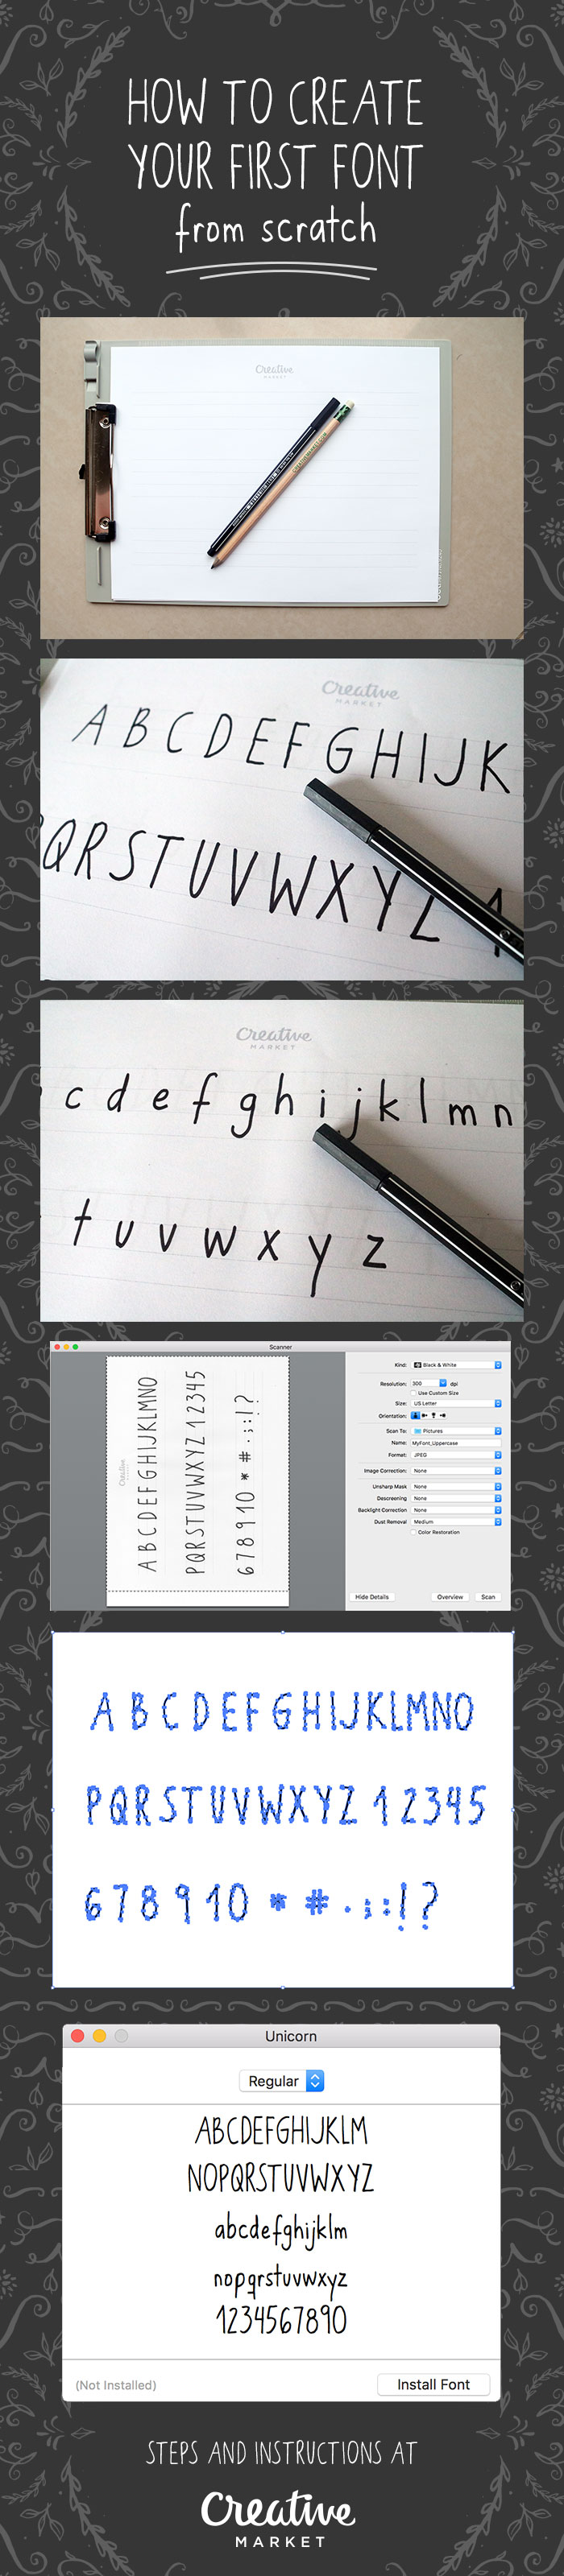 How to Create Your First Font from Scratch: A Step by Step